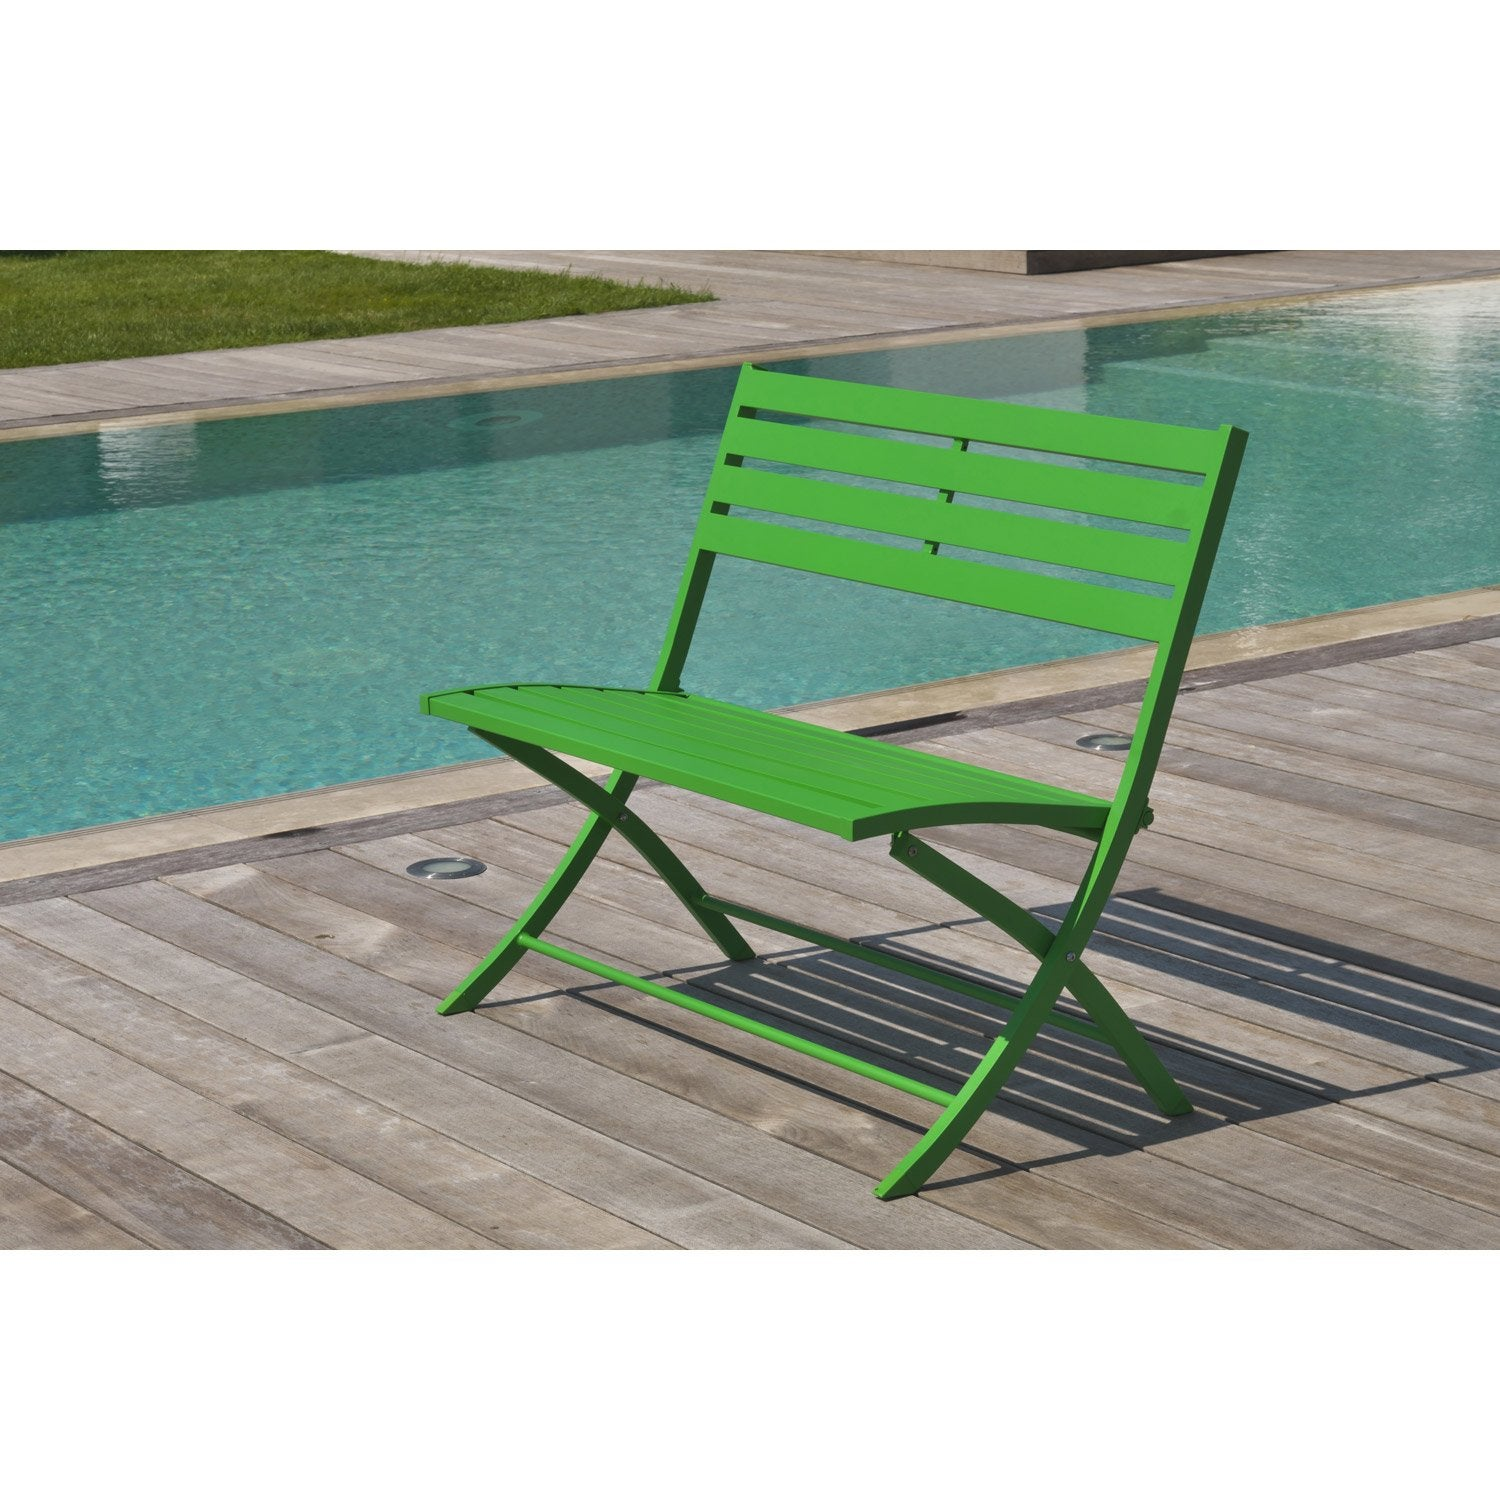 Banc de jardin 2 places maison design for Banc de jardin leroy merlin